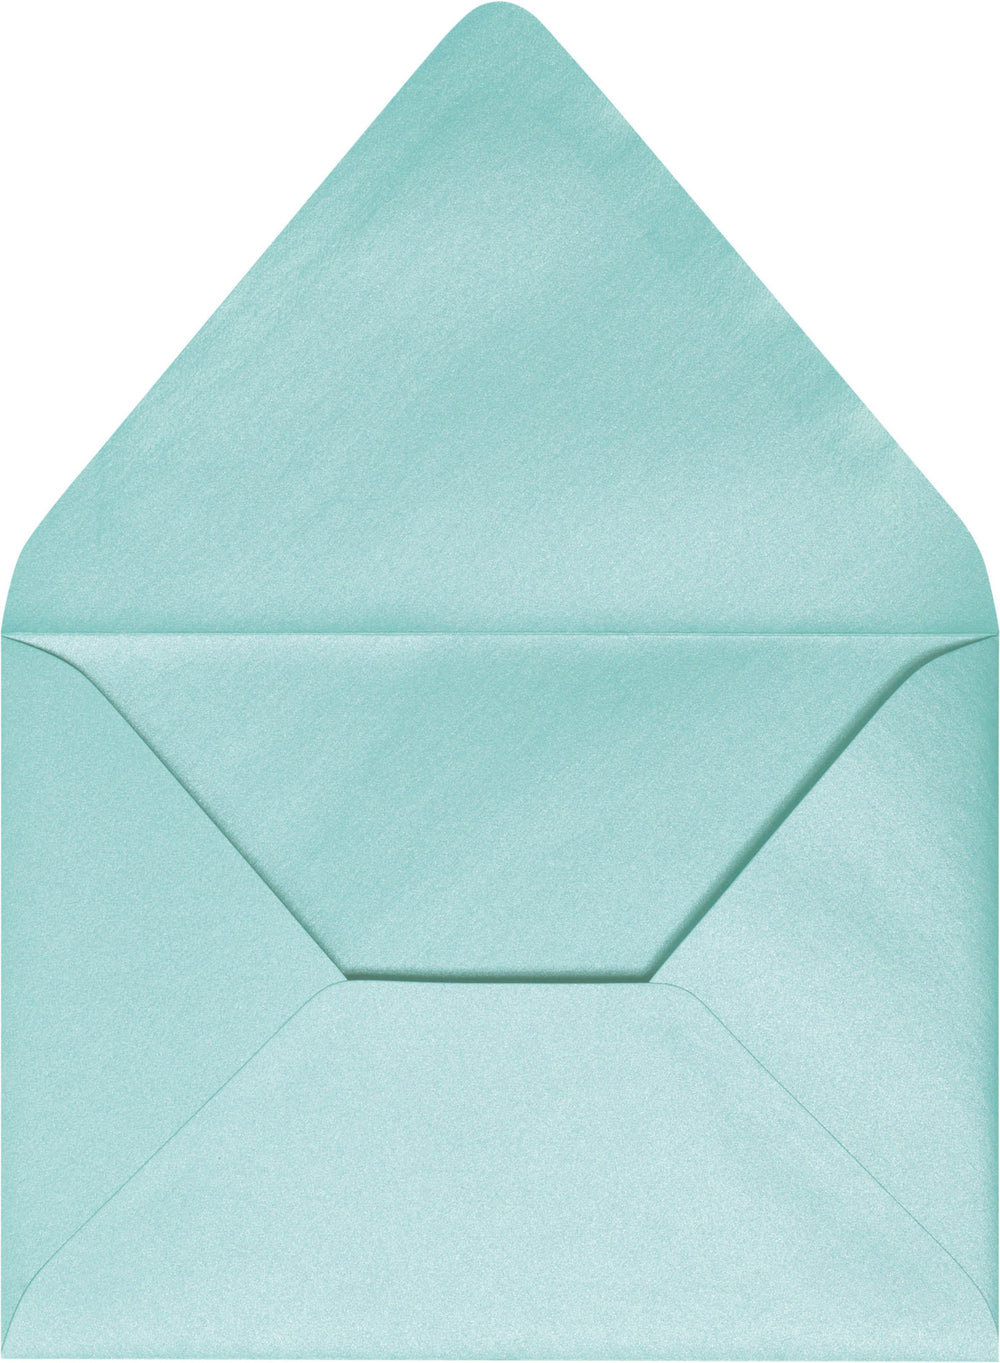 "A-1 (4 Bar) Topaz Blue Metallic Euro Flap Envelopes (3 5/8"" x 5 1/8"")"